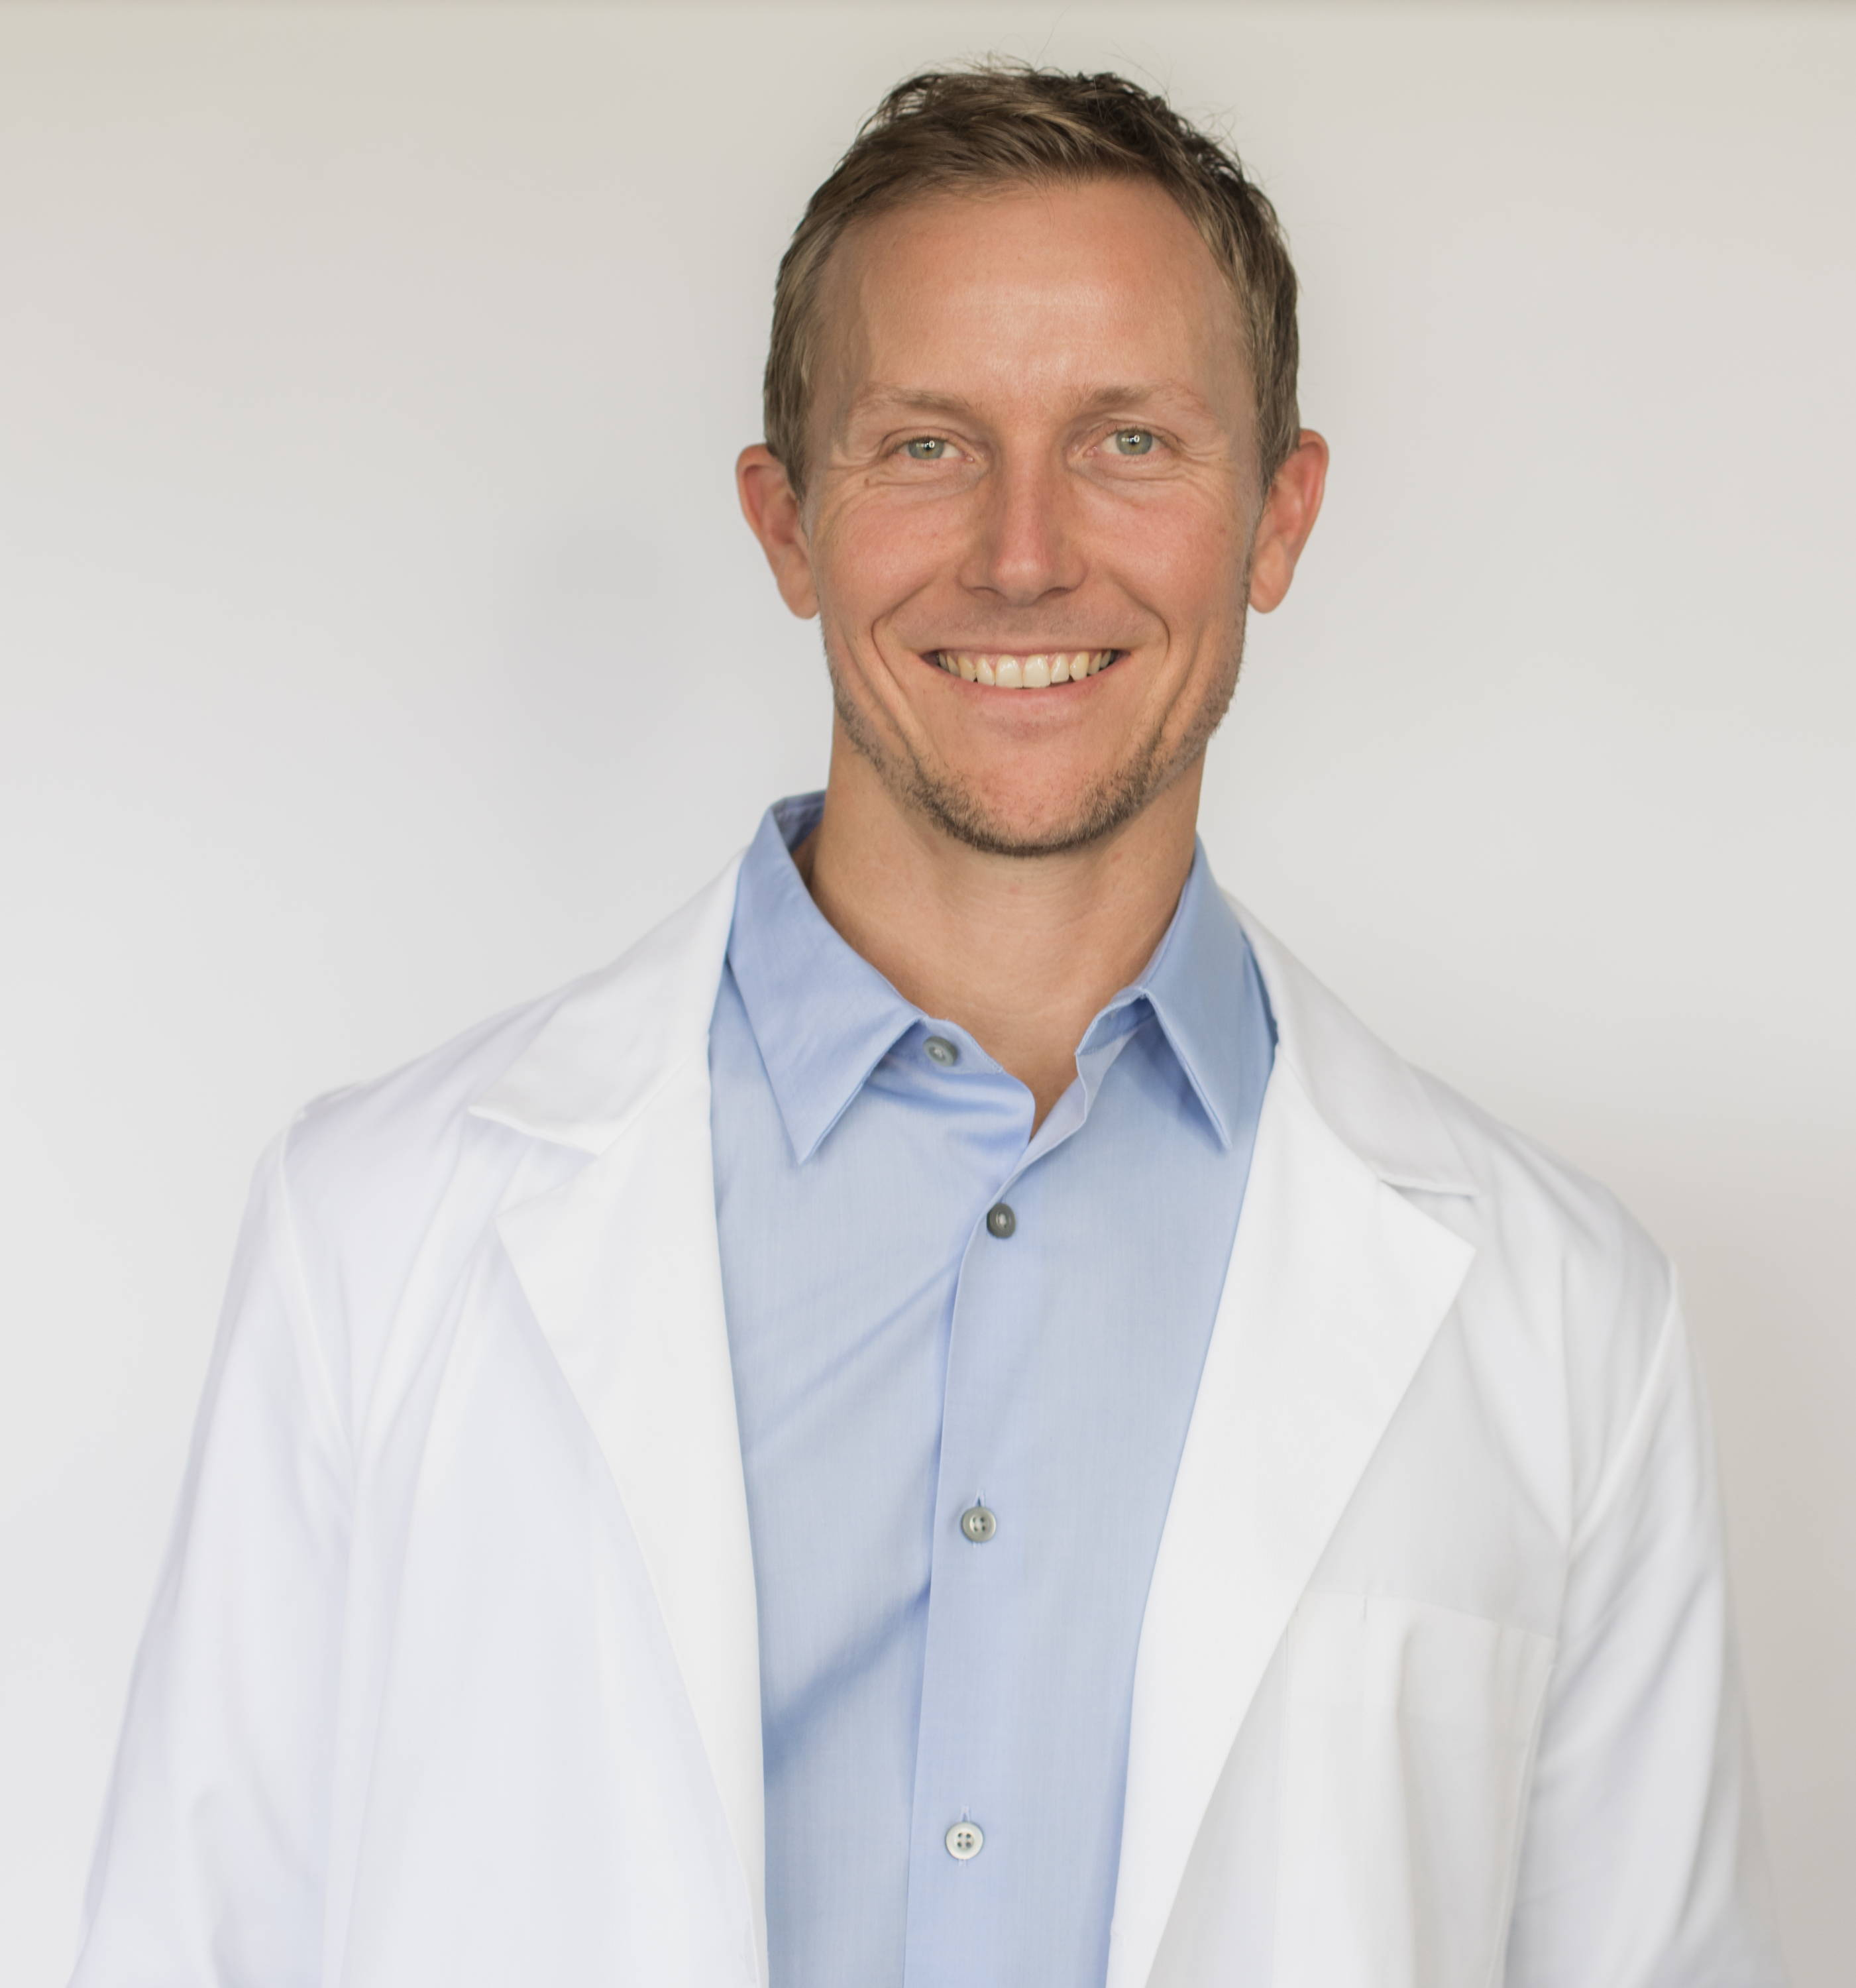 Author Dr. Chad Walding